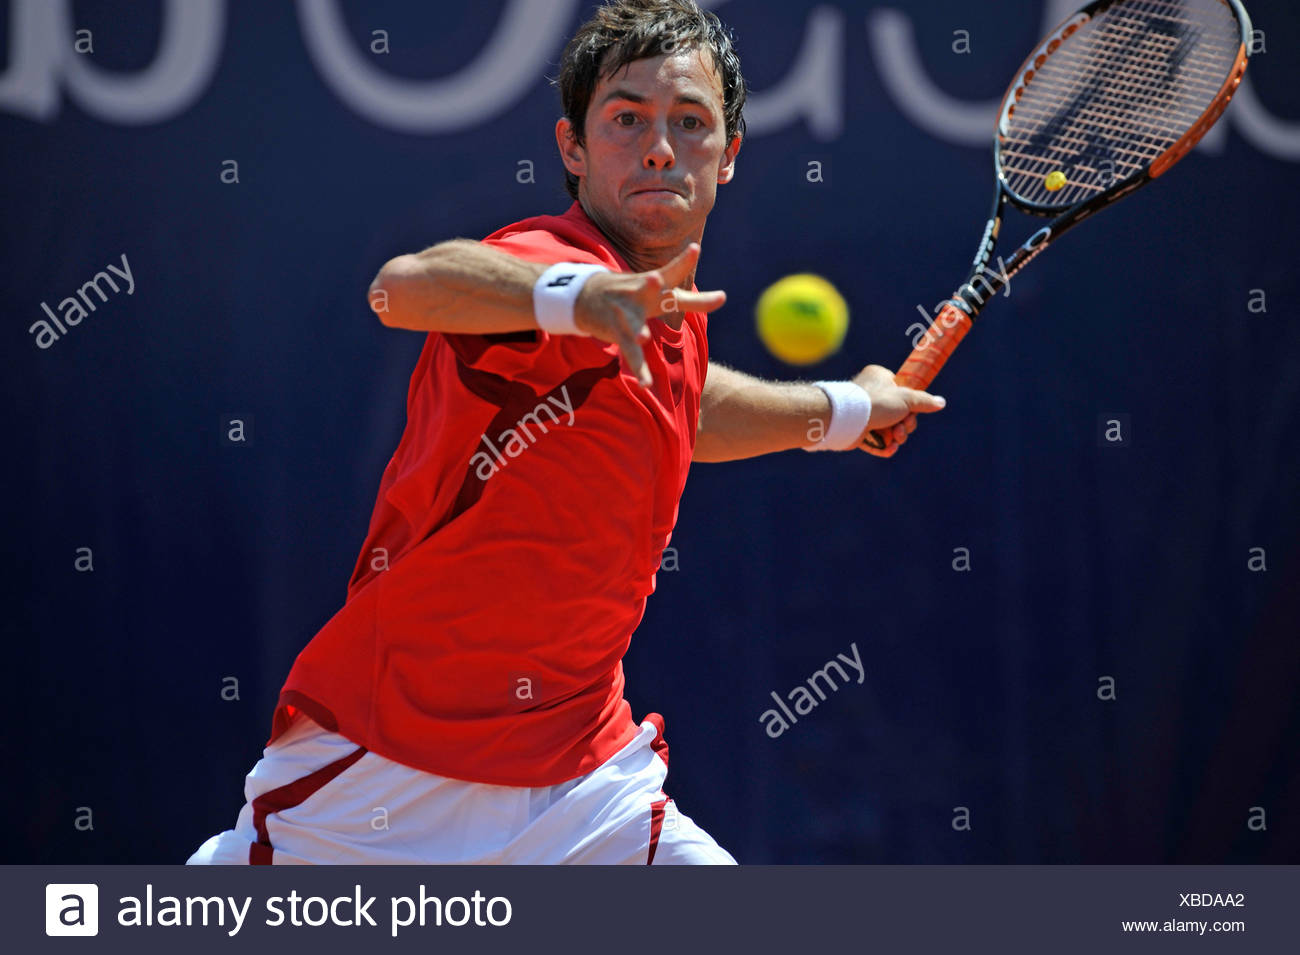 Simon Greul, Germany, Mercedes Cup Stuttgart 2009, Baden-Wuerttemberg, Germany, Europe - Stock Image